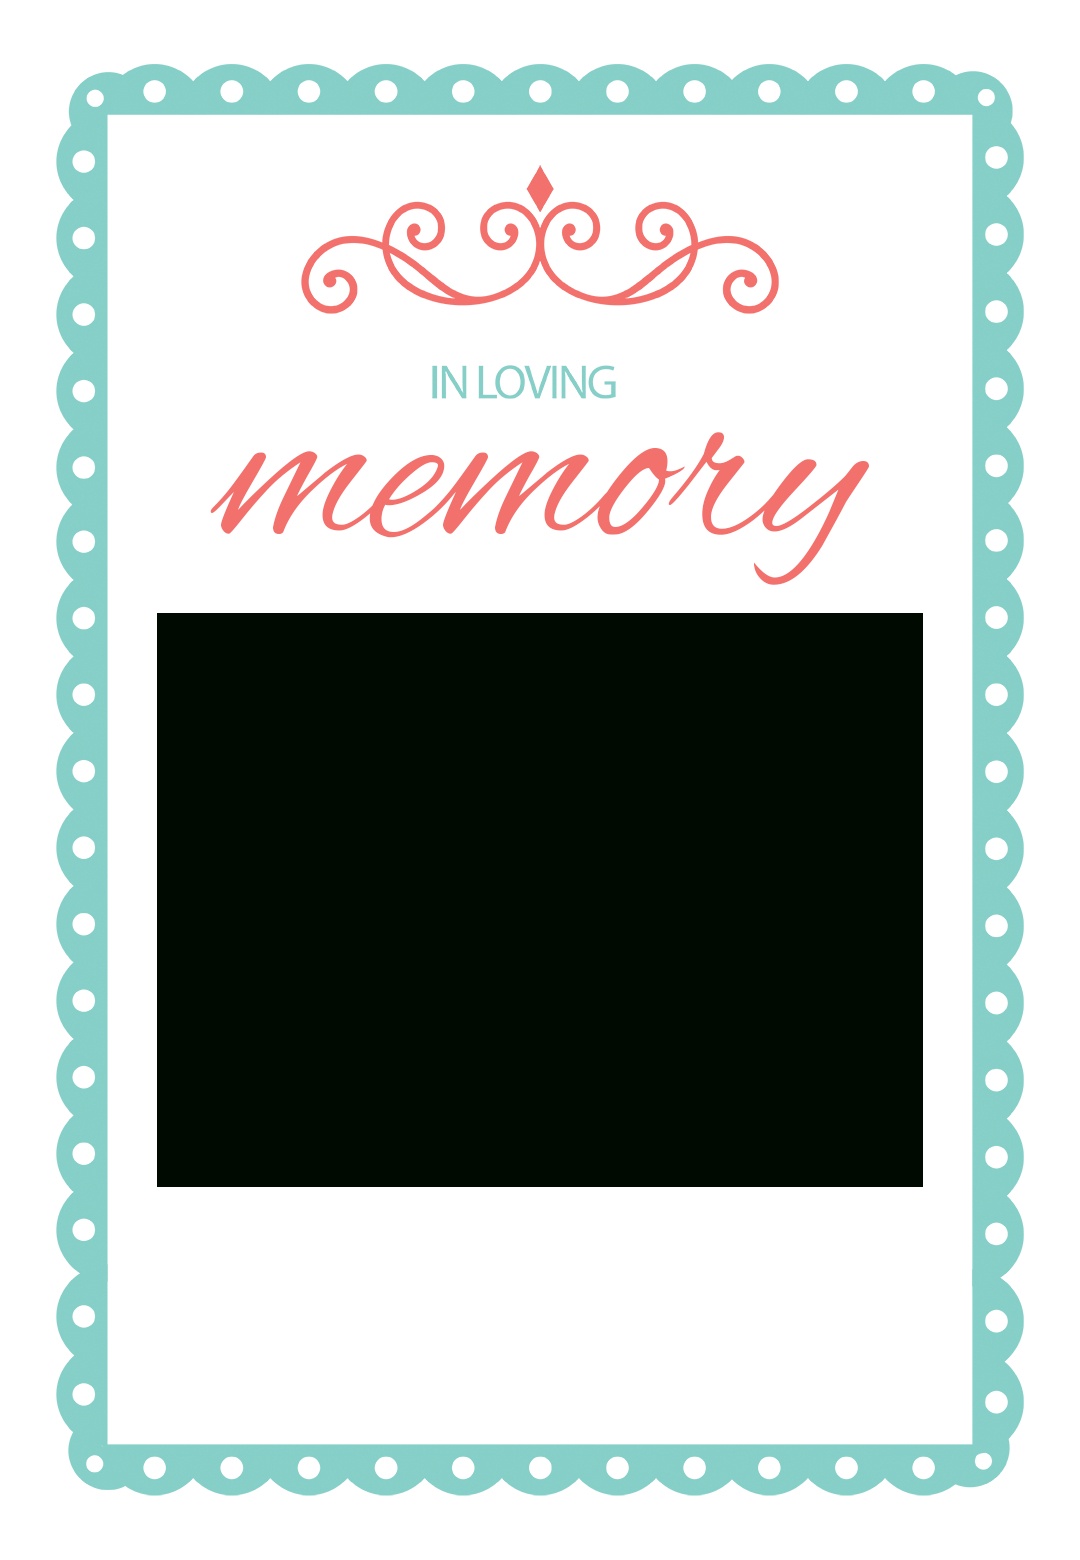 001 In Loving Memory Template Free Fantastic Ideas Card Inside In Memory Cards Templates